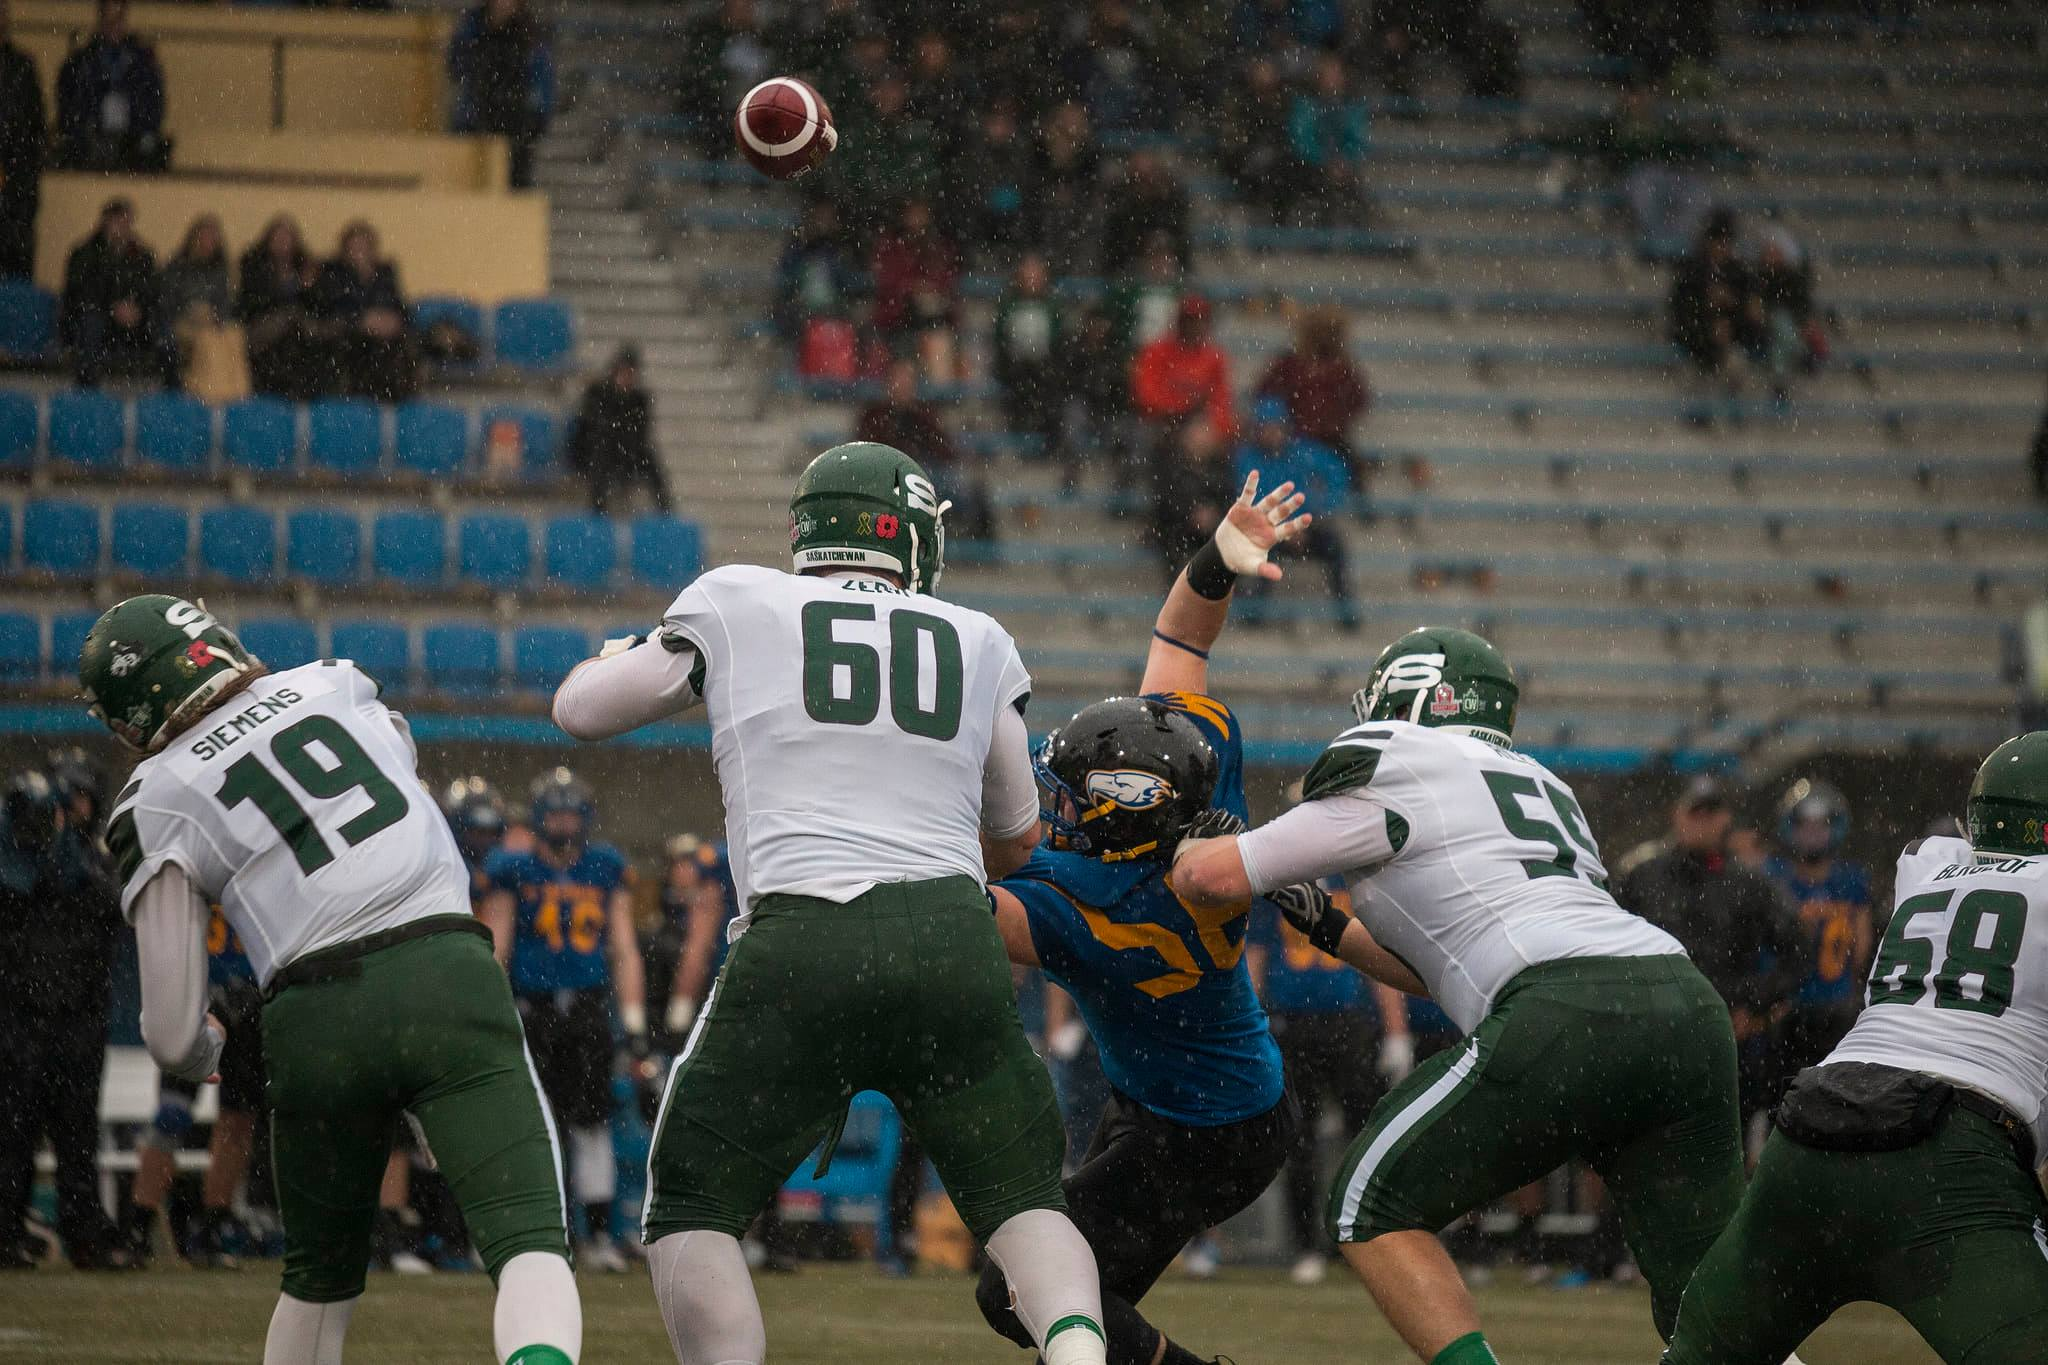 UBC football let the game slip through their hands on Saturday.